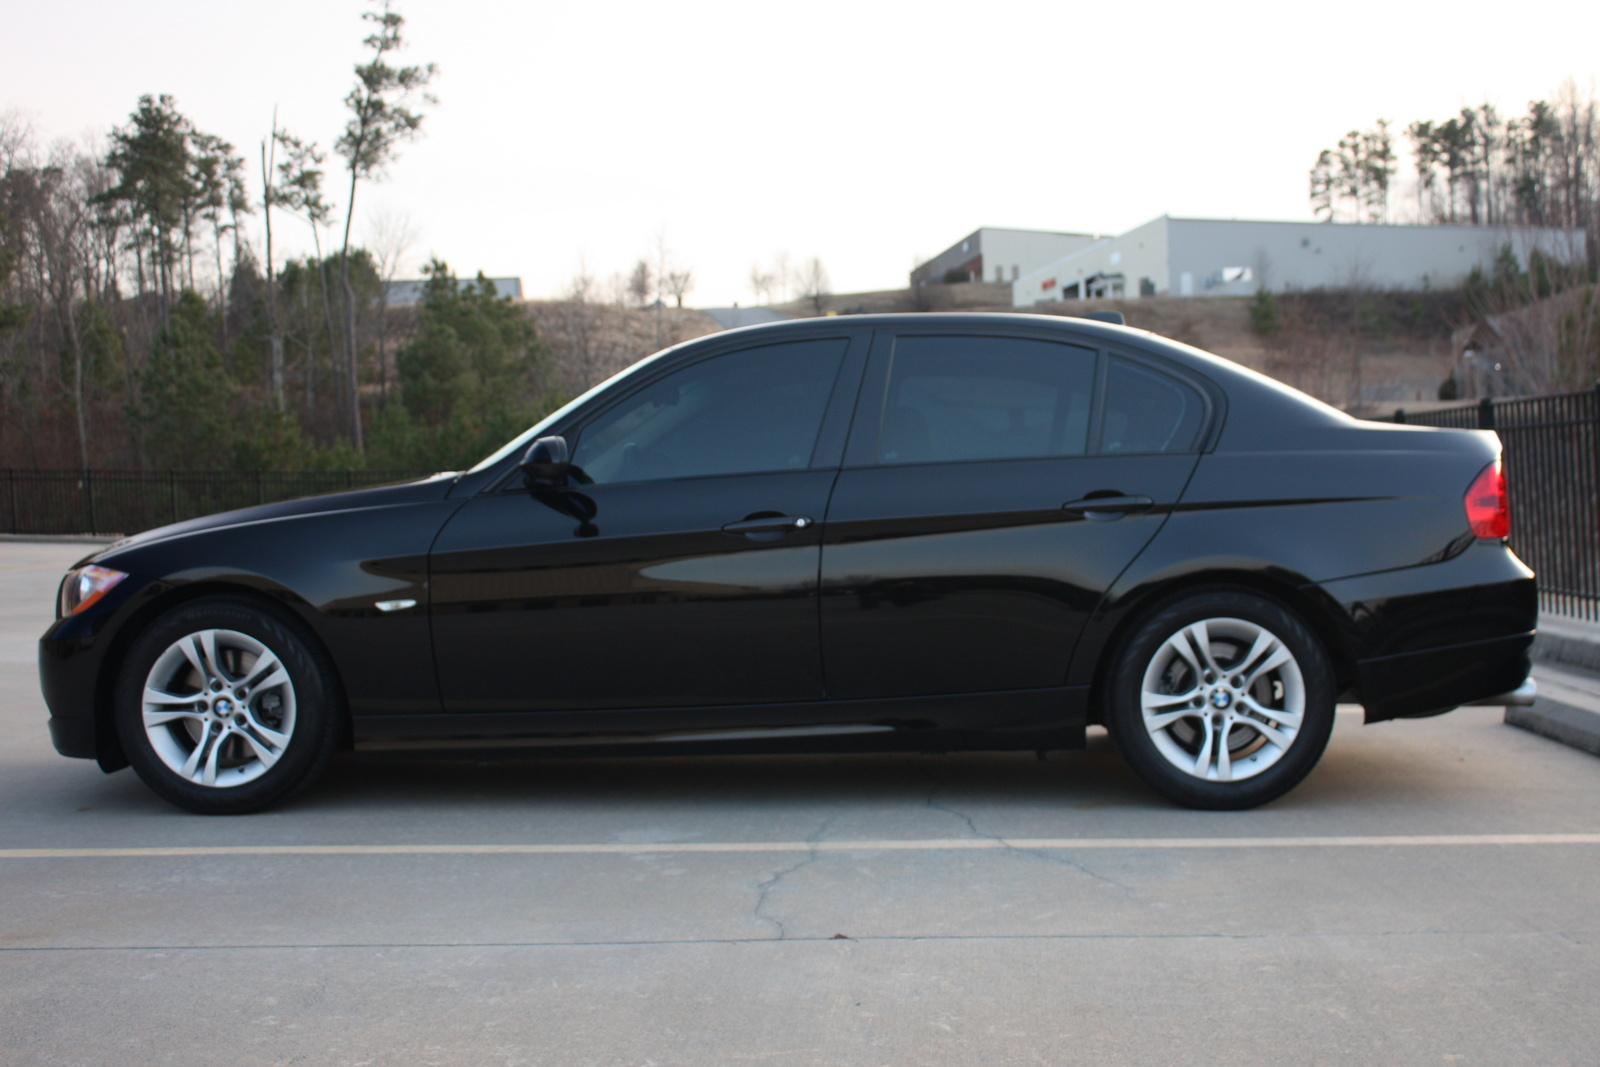 BMW 3 series 328i 2008 photo - 1